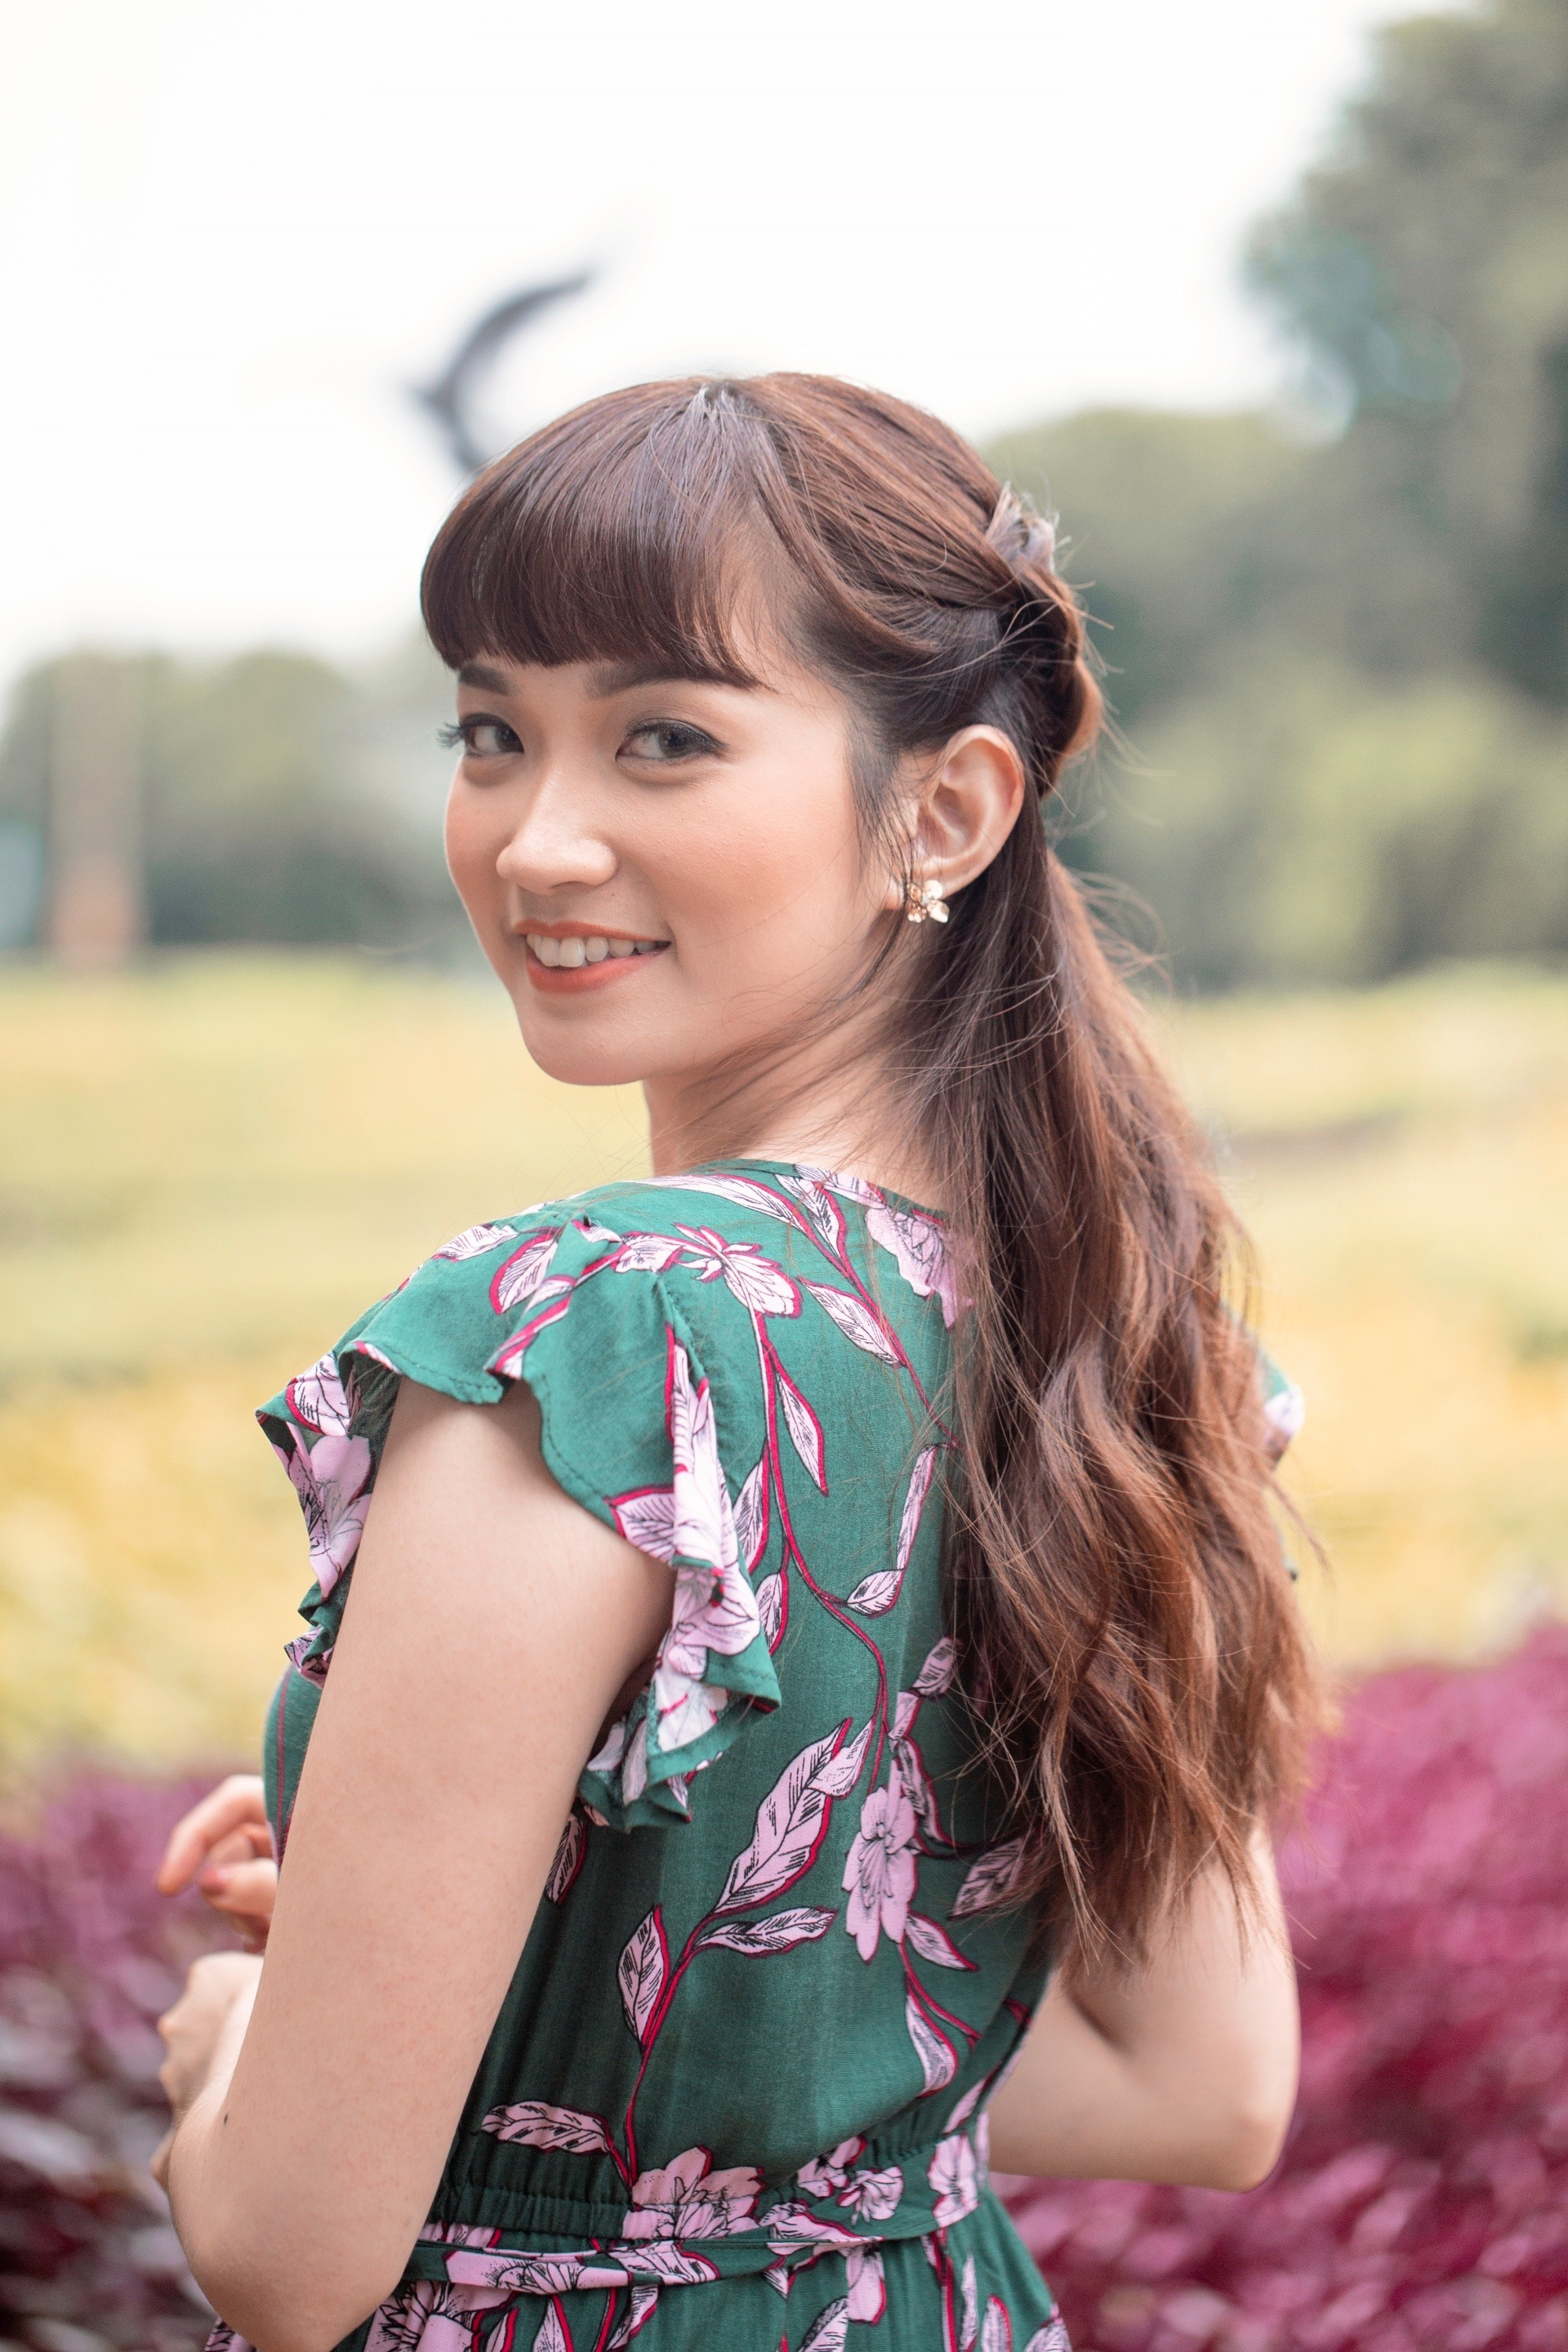 Summer braids: Asian woman with long wavy hair in a half up braid wearing a printed dress outdoors